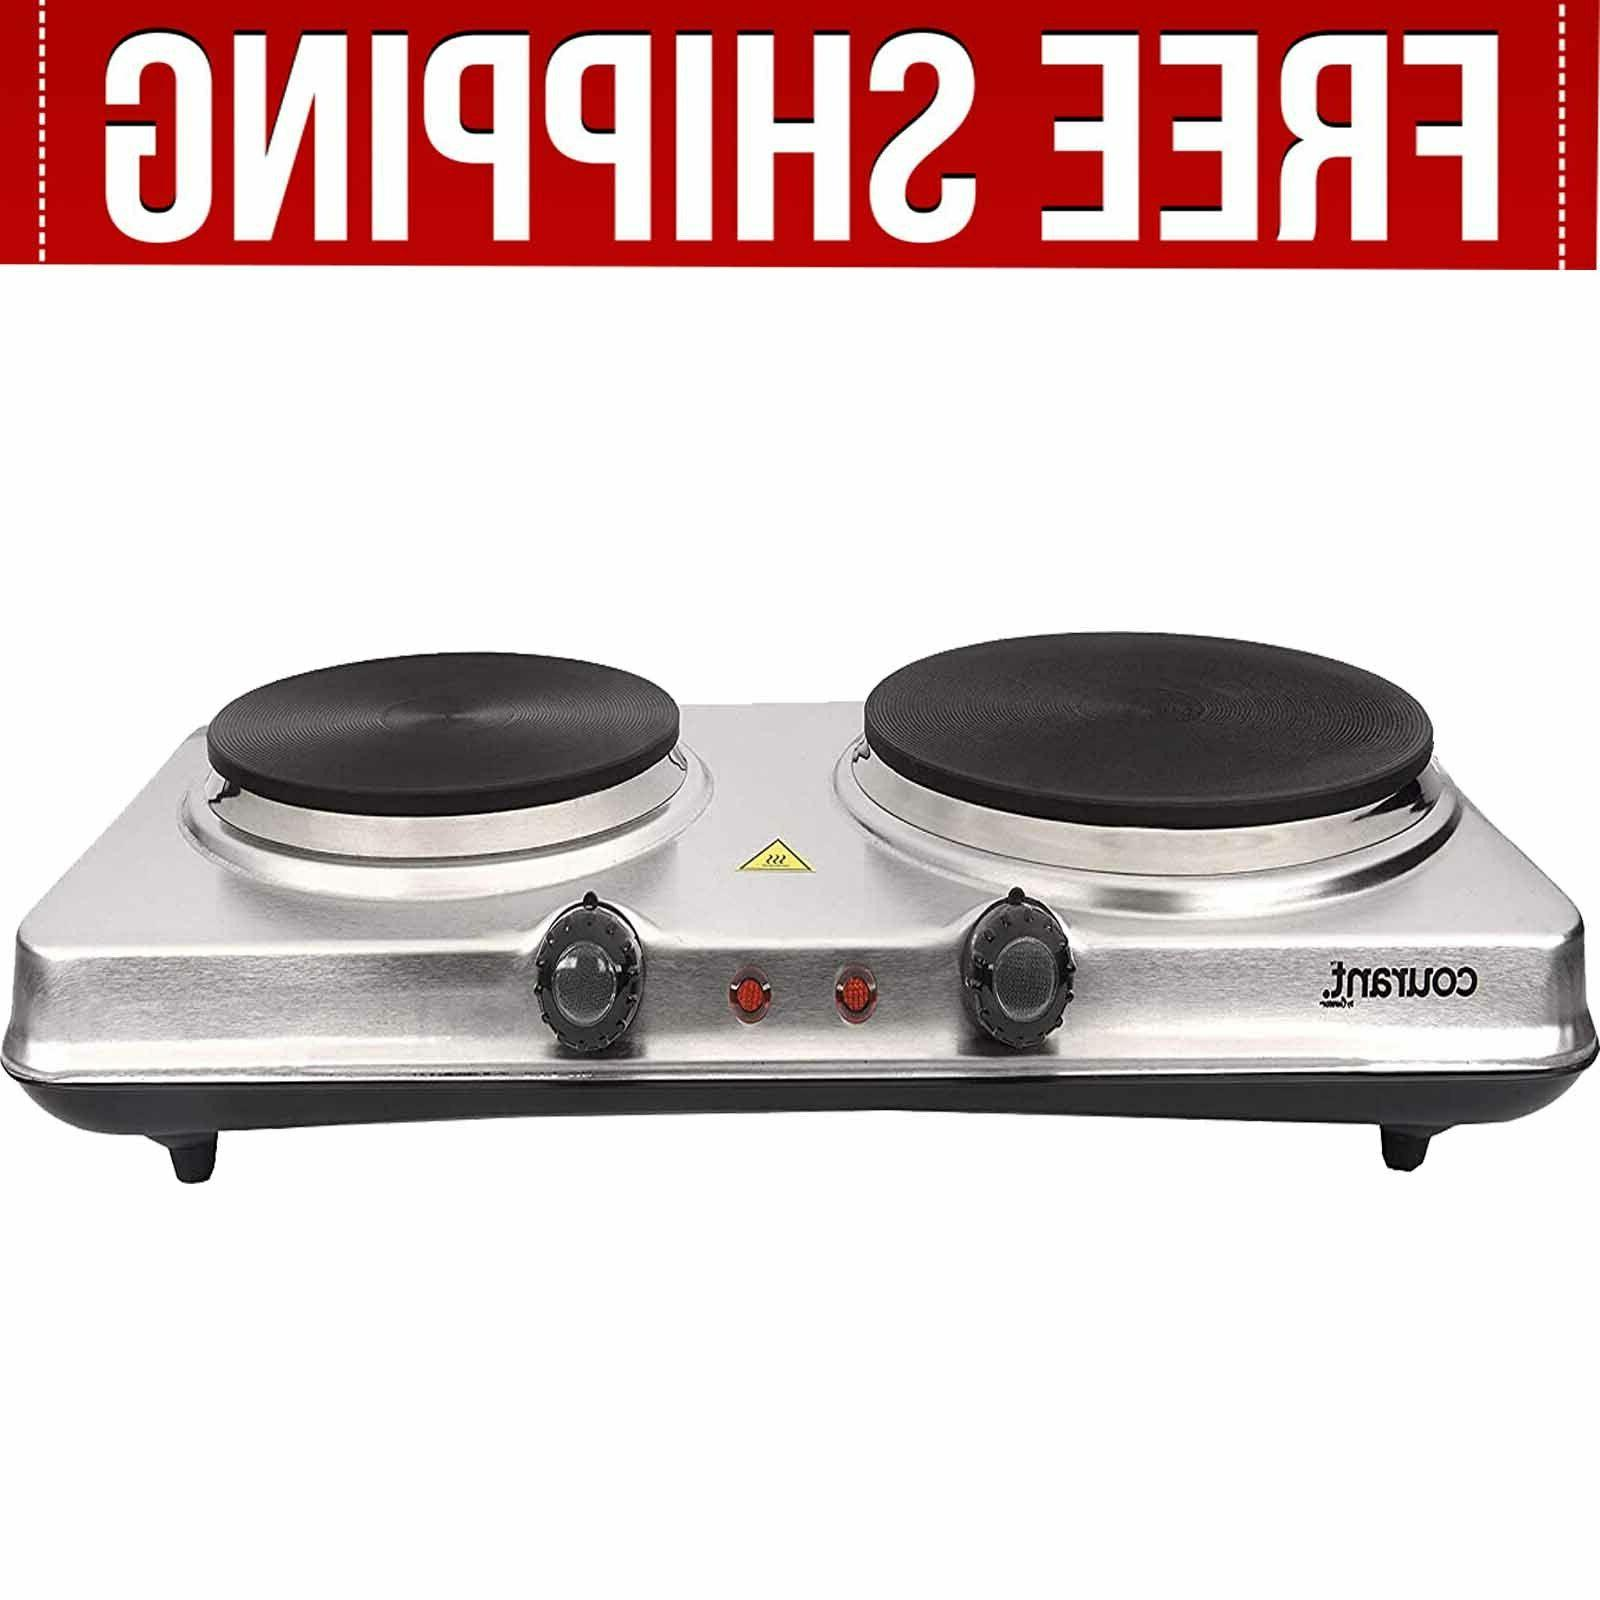 electric cooktop burner 1700w hot plate portable